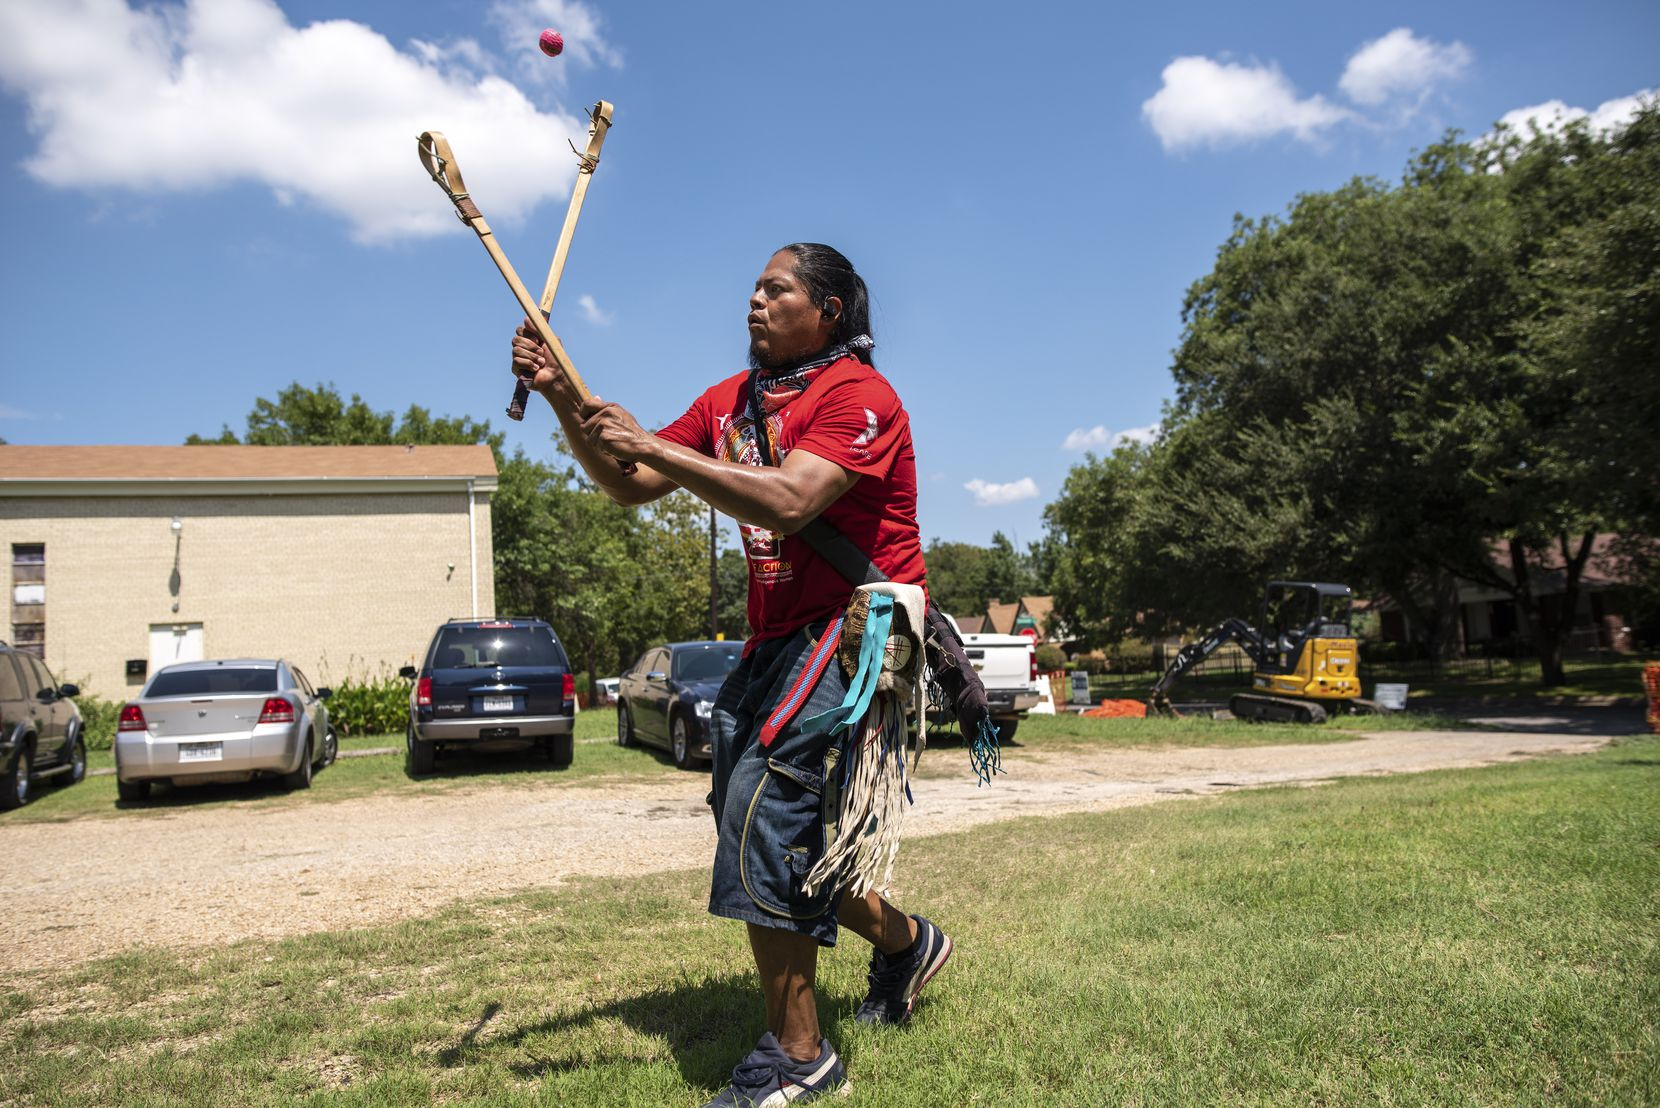 Eli Hickman, 40, who is of Choctaw/Navajo descent, played a Native American stick ball game during a community awareness event hosted by American Indian Heritage Day in Texas.